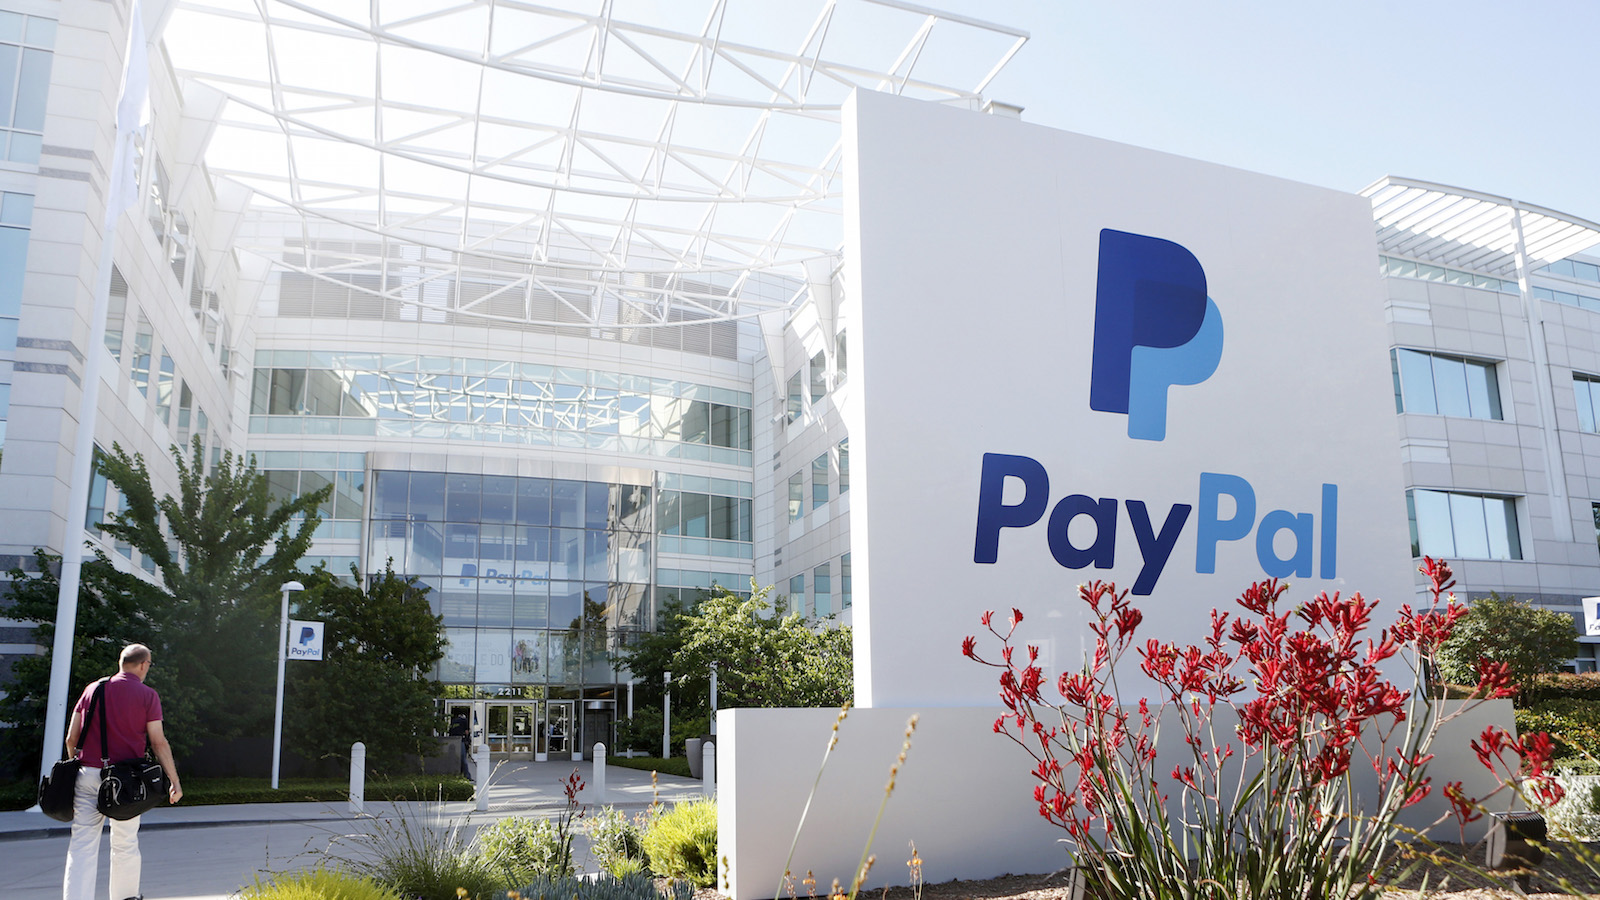 Paypal (PYPL) has partnered with Coinbase for a bitcoin deal